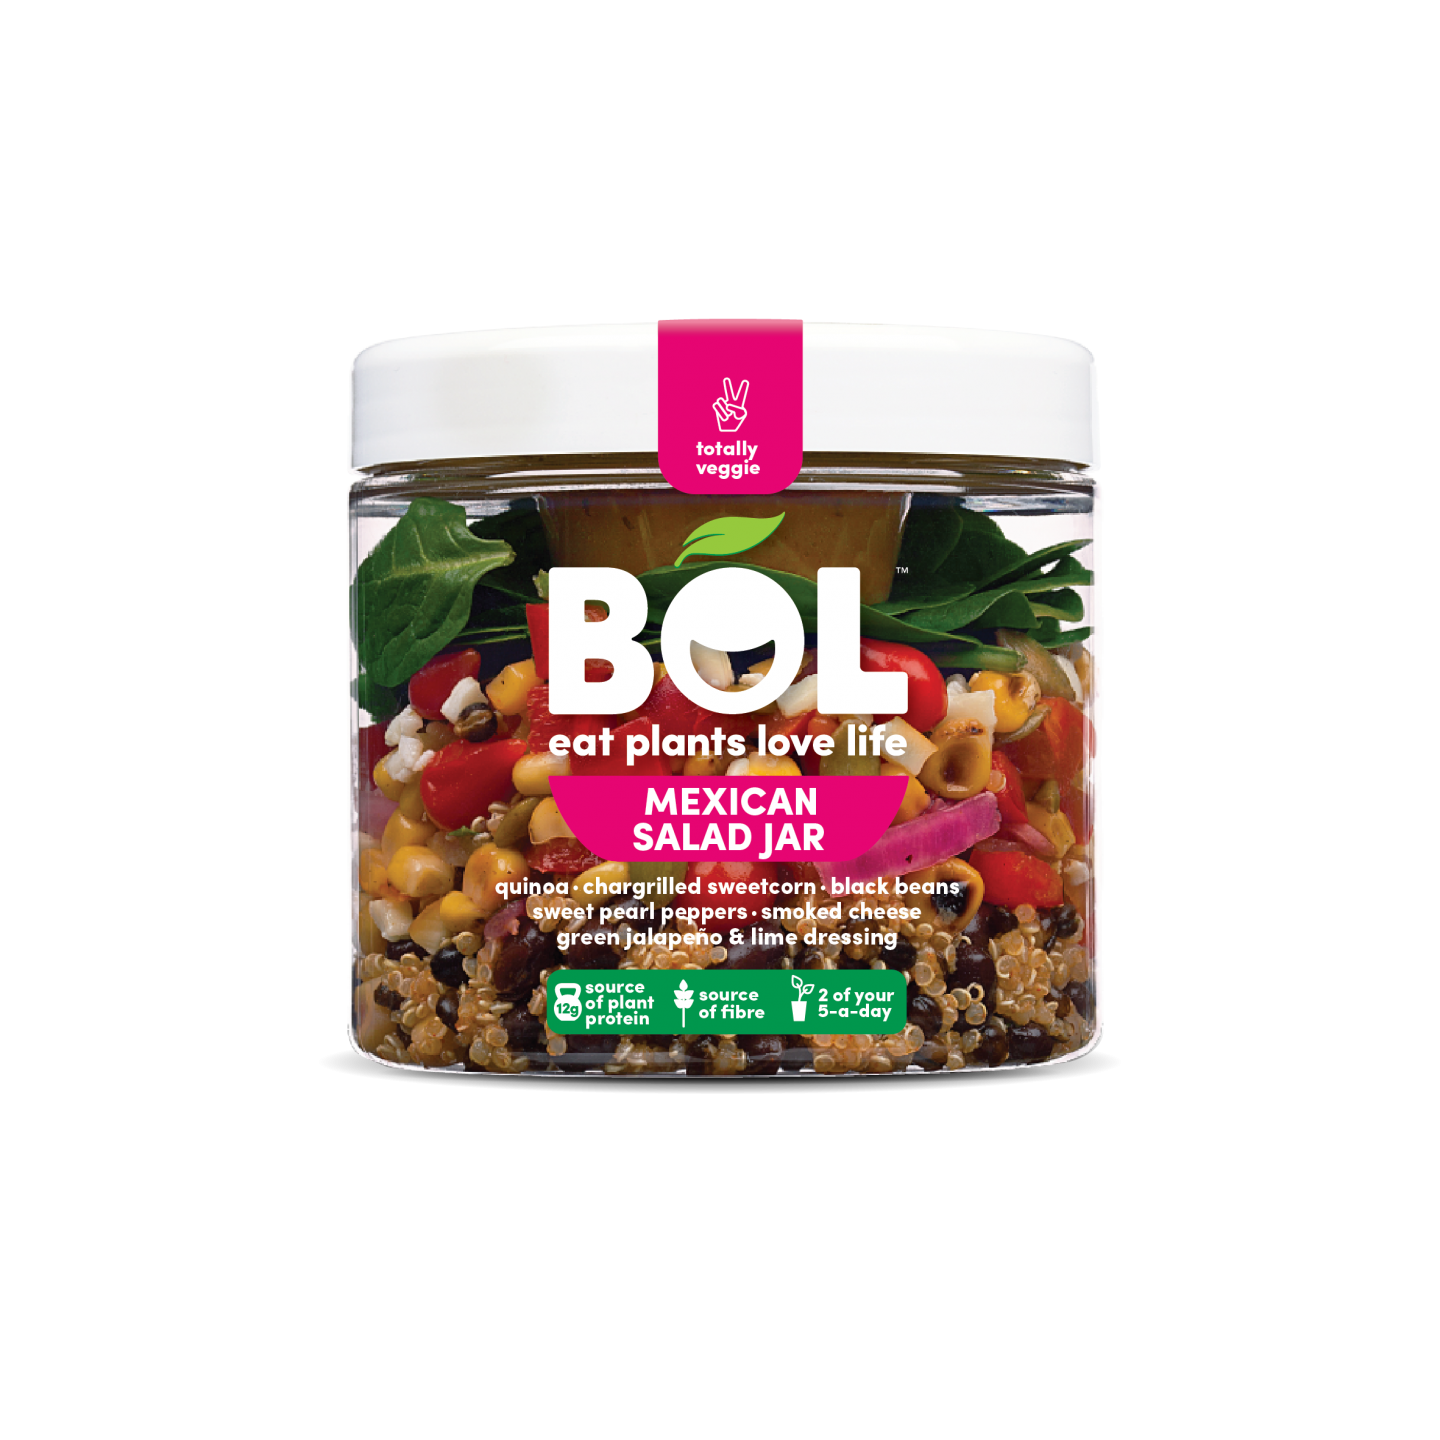 BOL salad jars review mediterranean super green salad mexican japanese vegetarian meals on the go under 350 calories